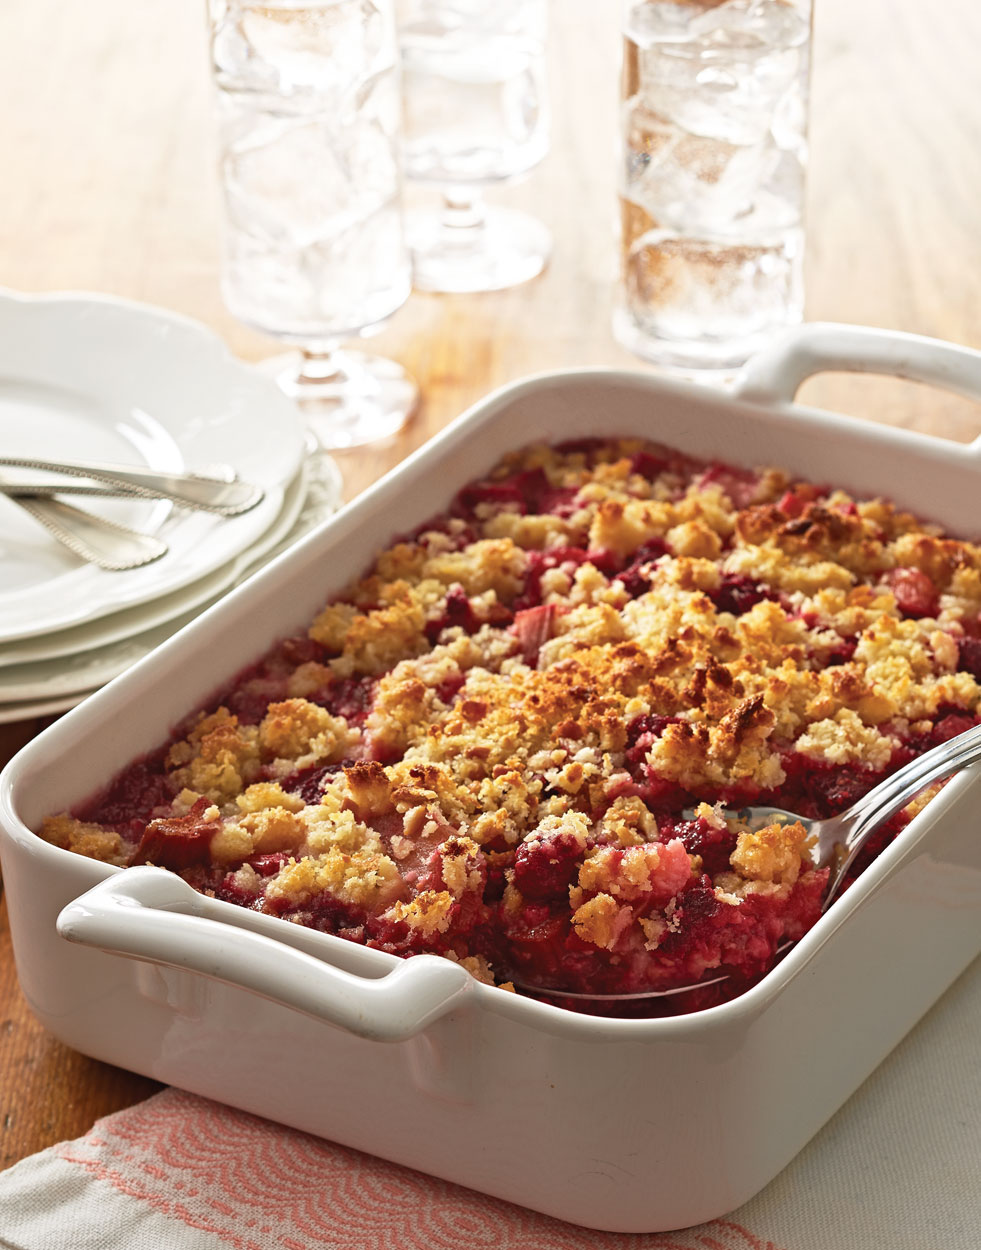 Rhubarb-Raspberry Brown Betty